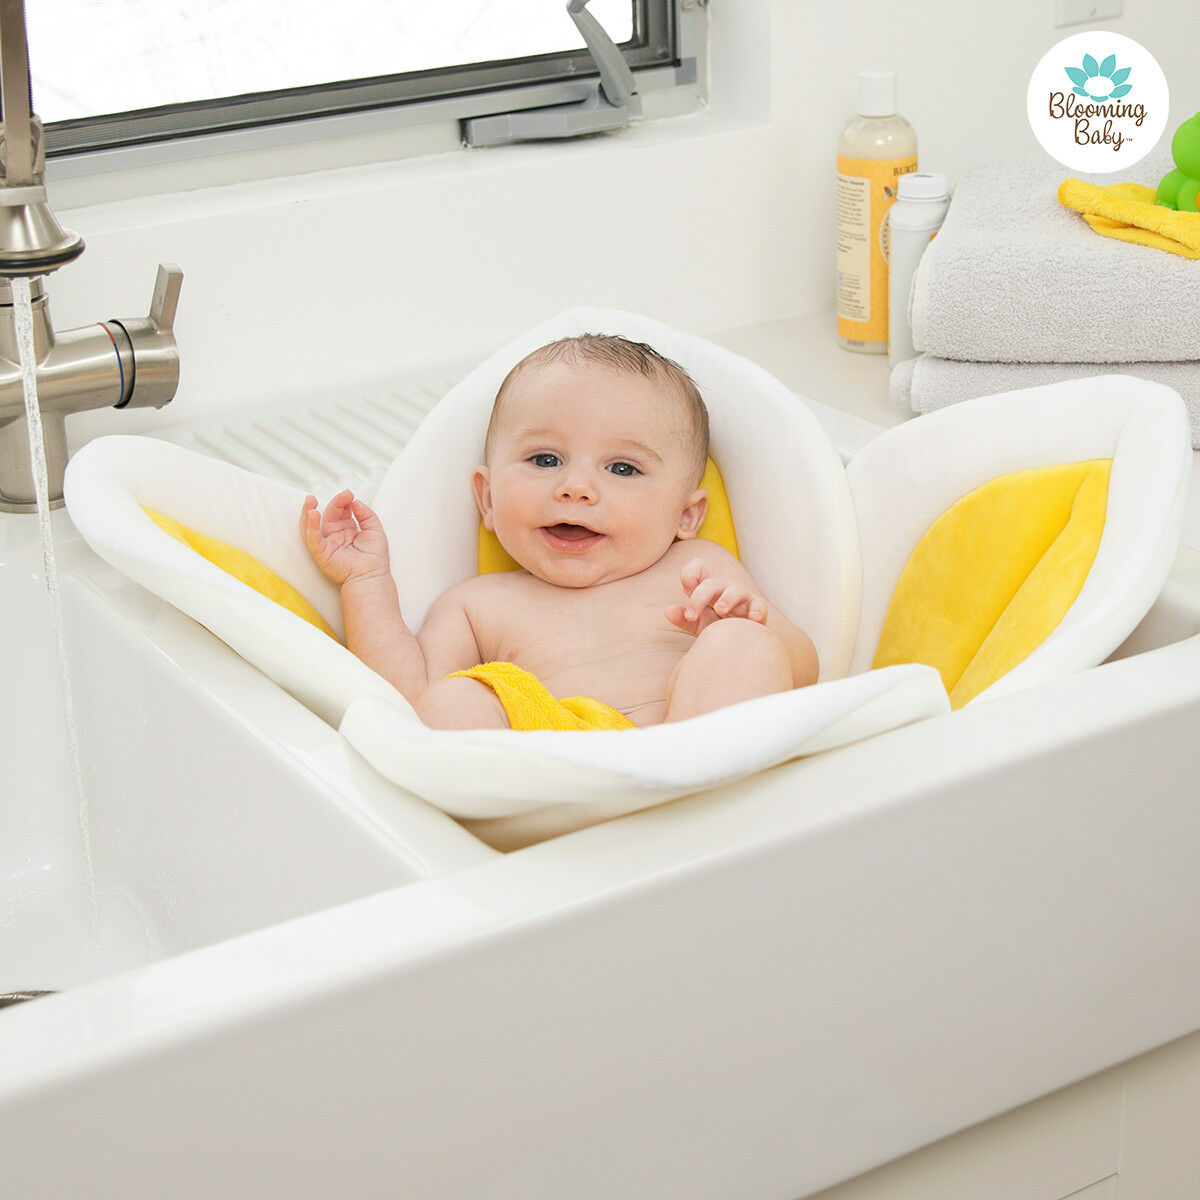 Blooming Bath Lotus Baby Bathing Mat Cushion Flower Yellow | eBay